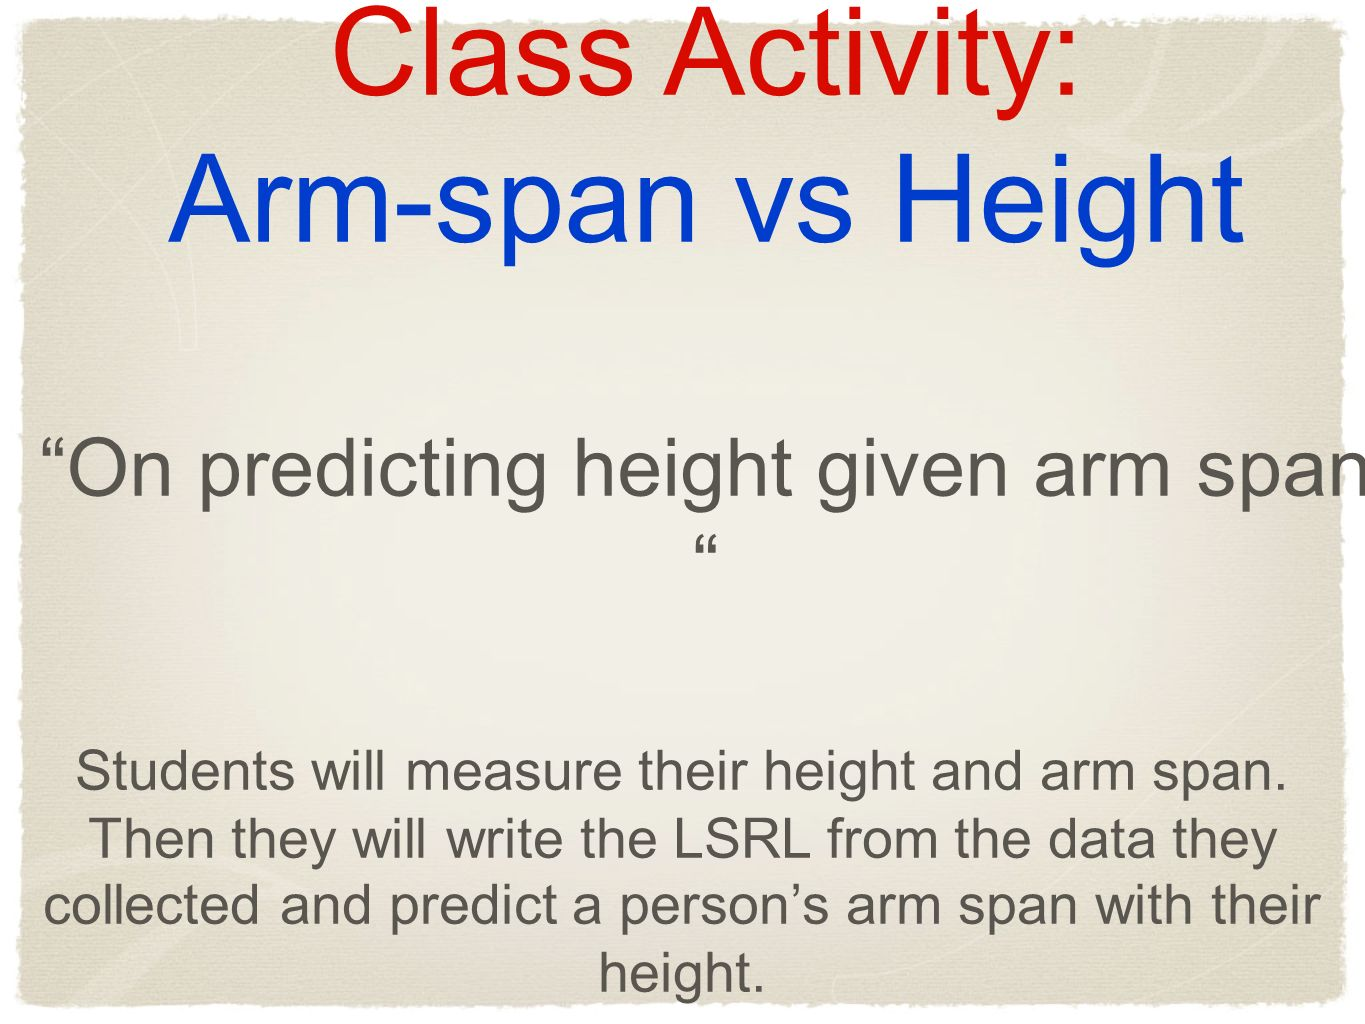 On predicting height given arm span